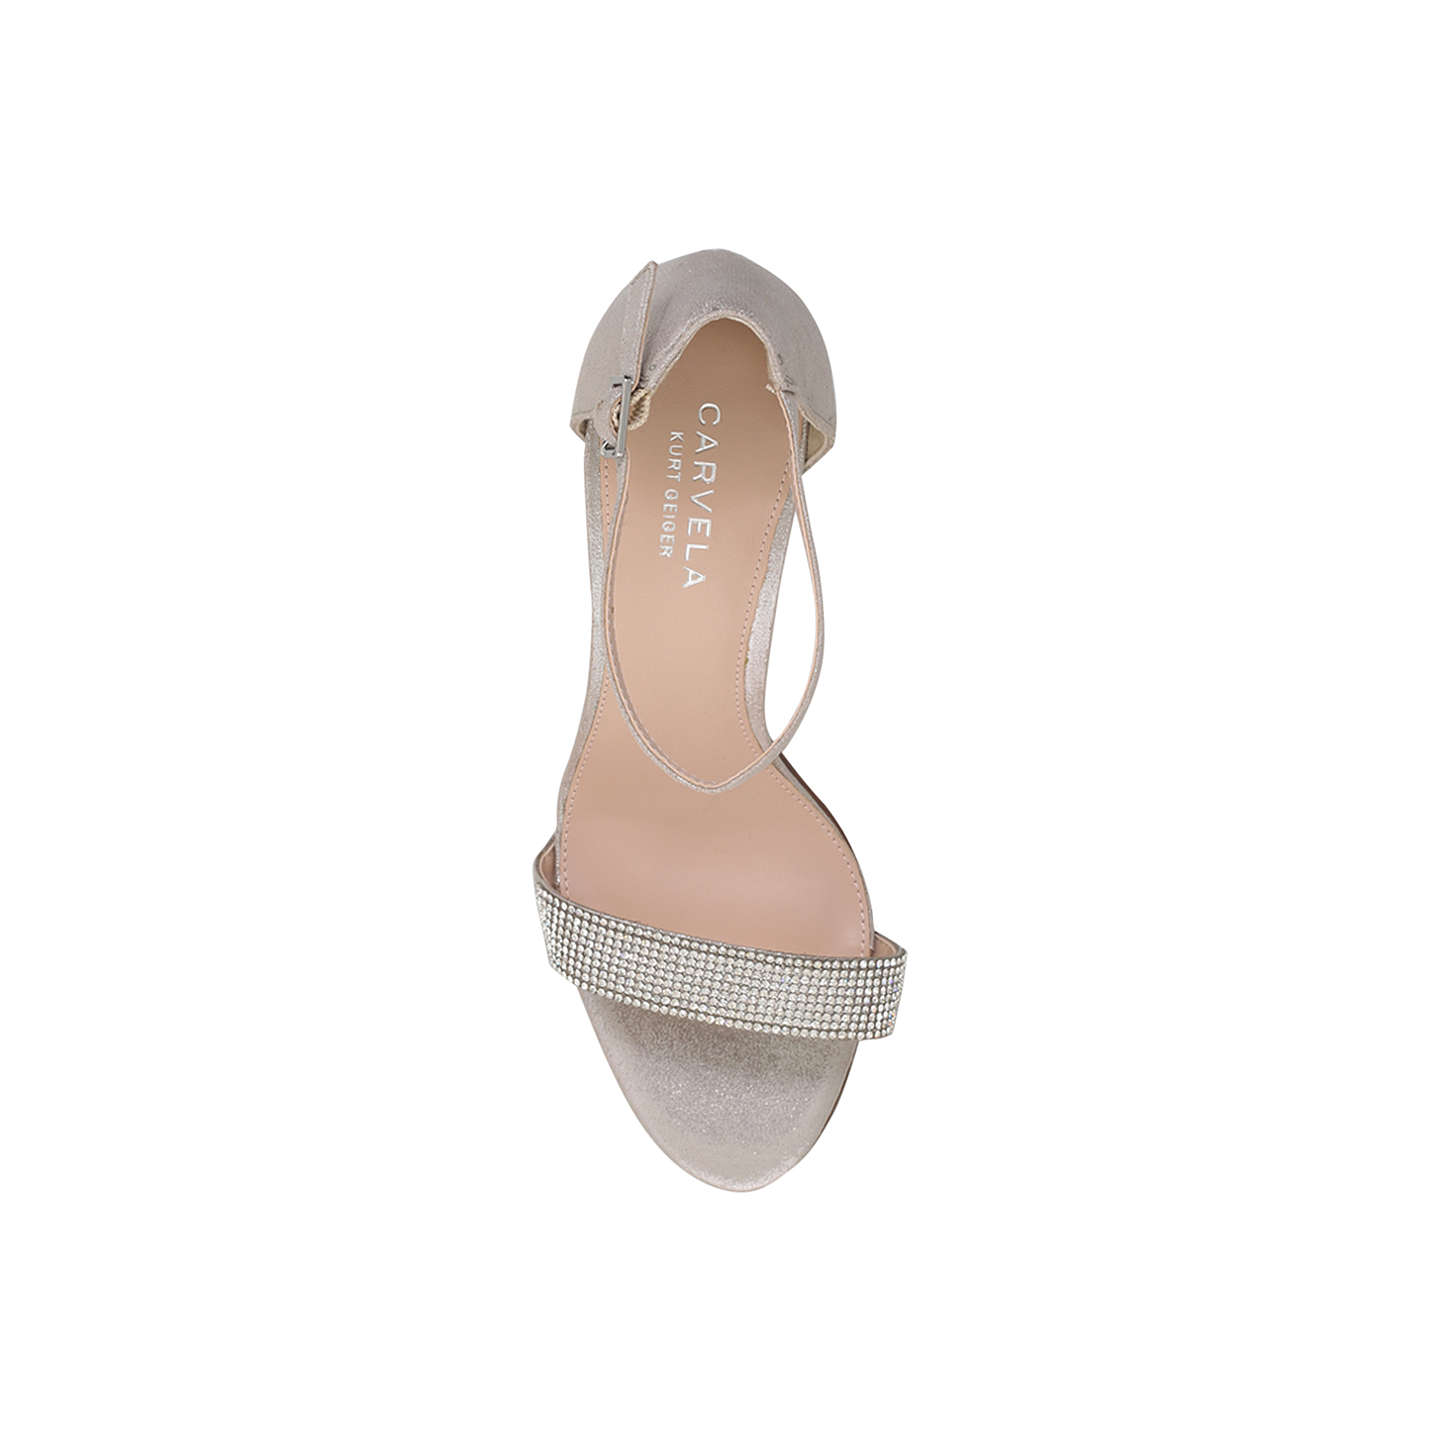 BuyCarvela Kiwi 2 Two Part High Heel Sandals, Silver, 3 Online at johnlewis.com